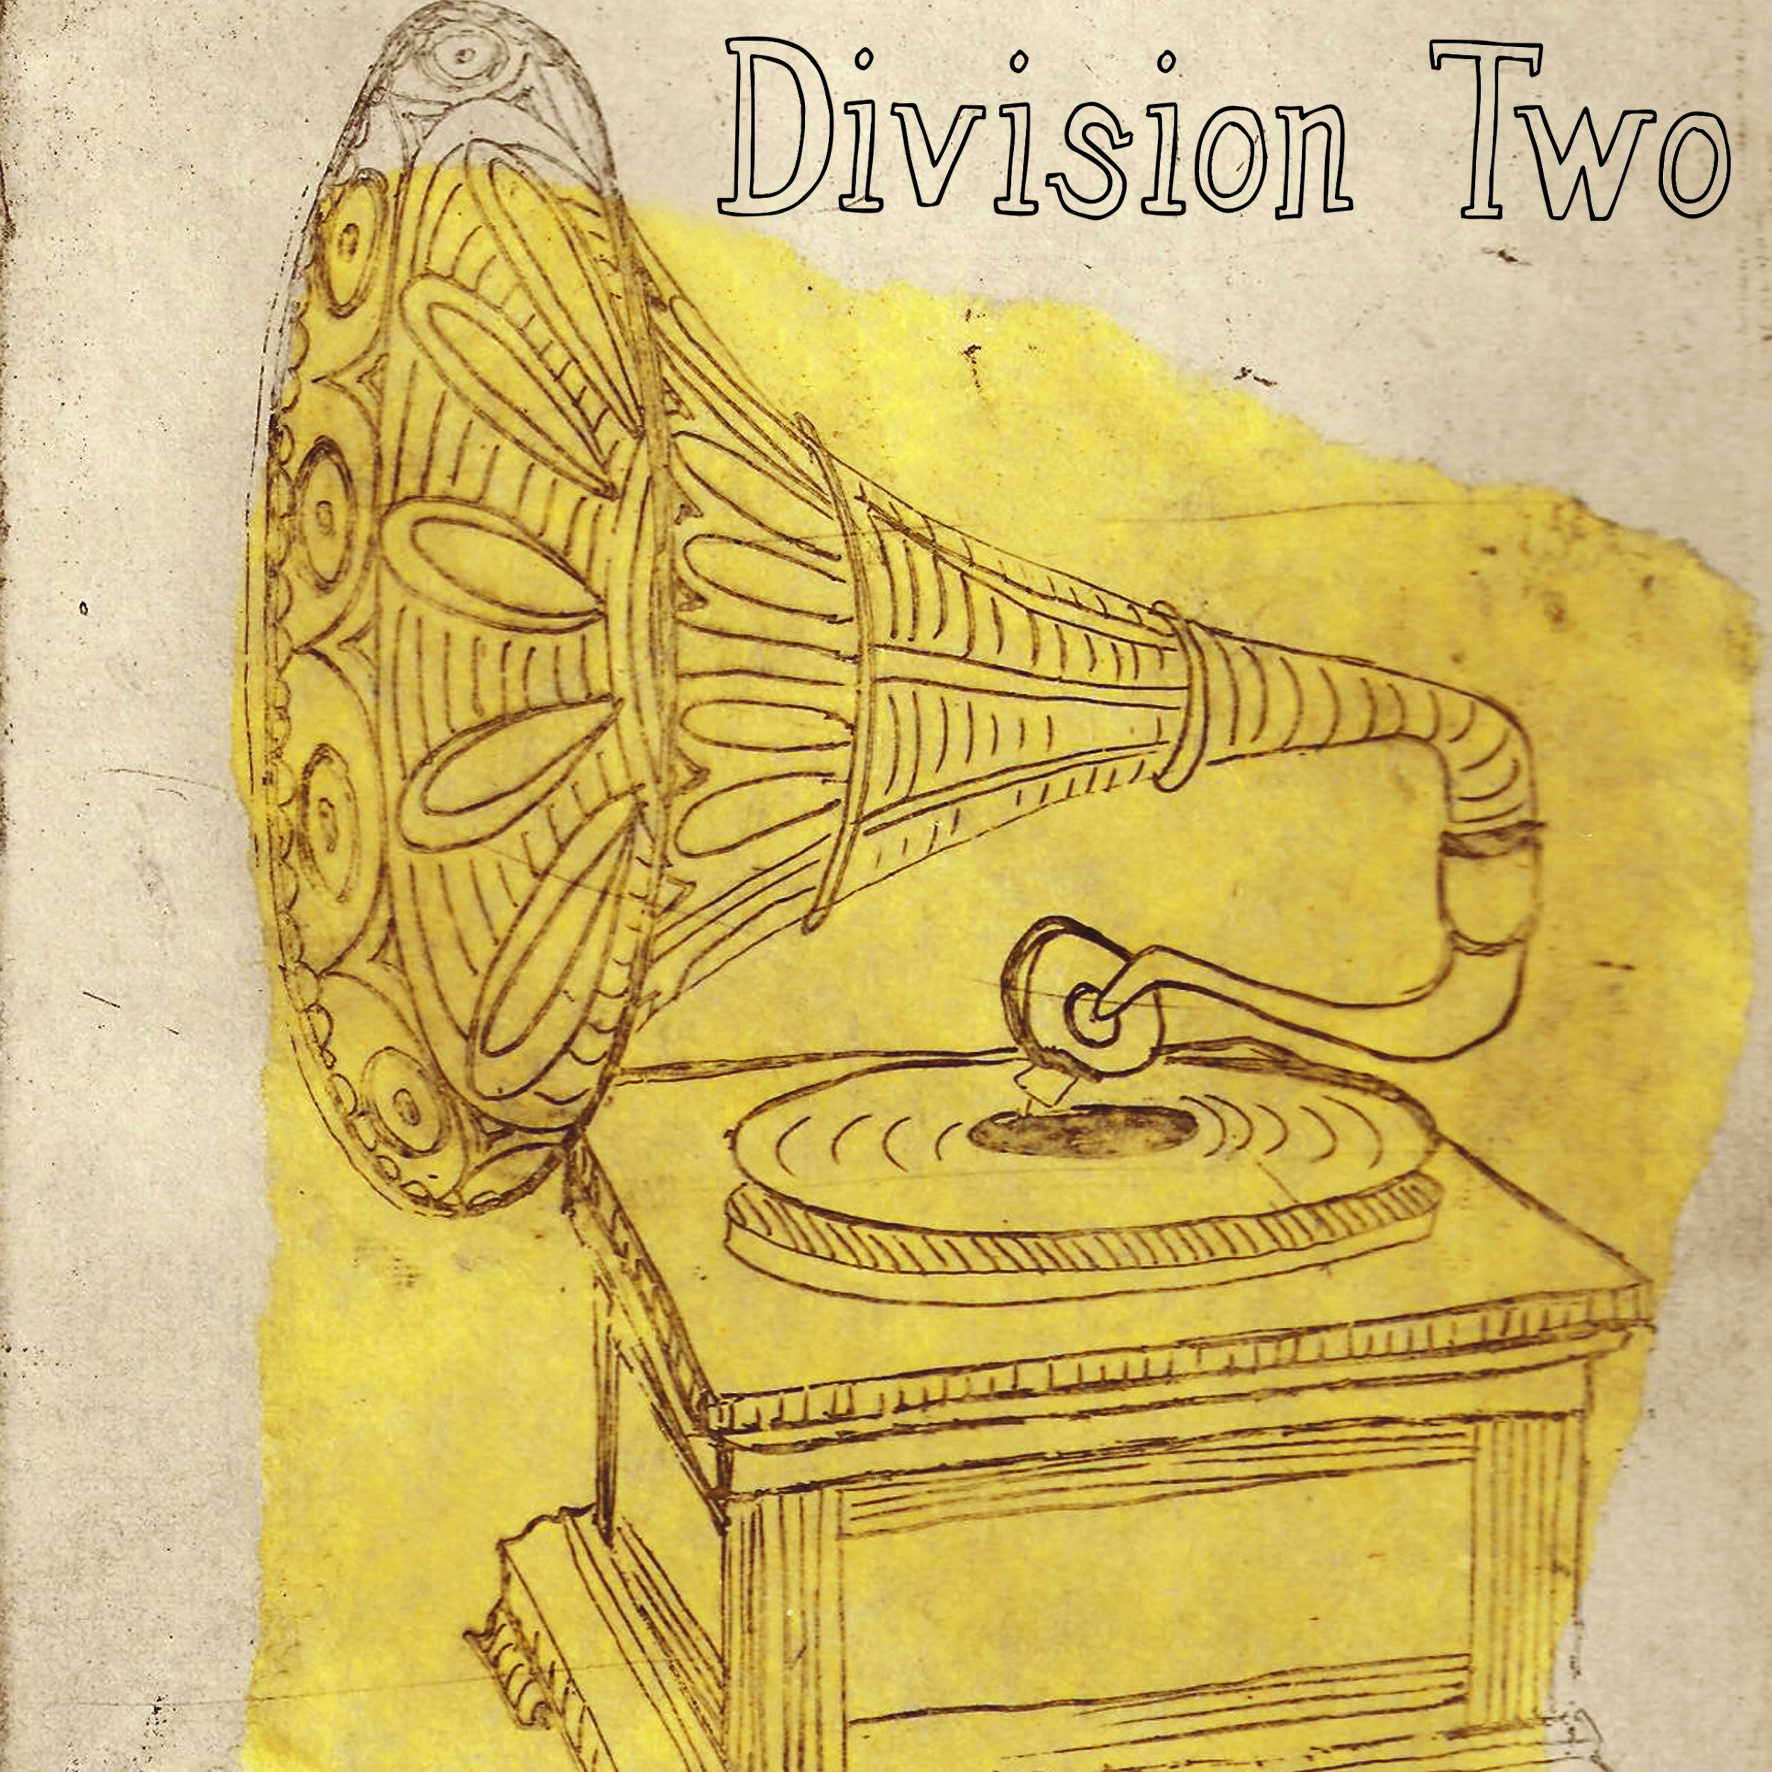 Division Two Long Division Compilation Album 2014